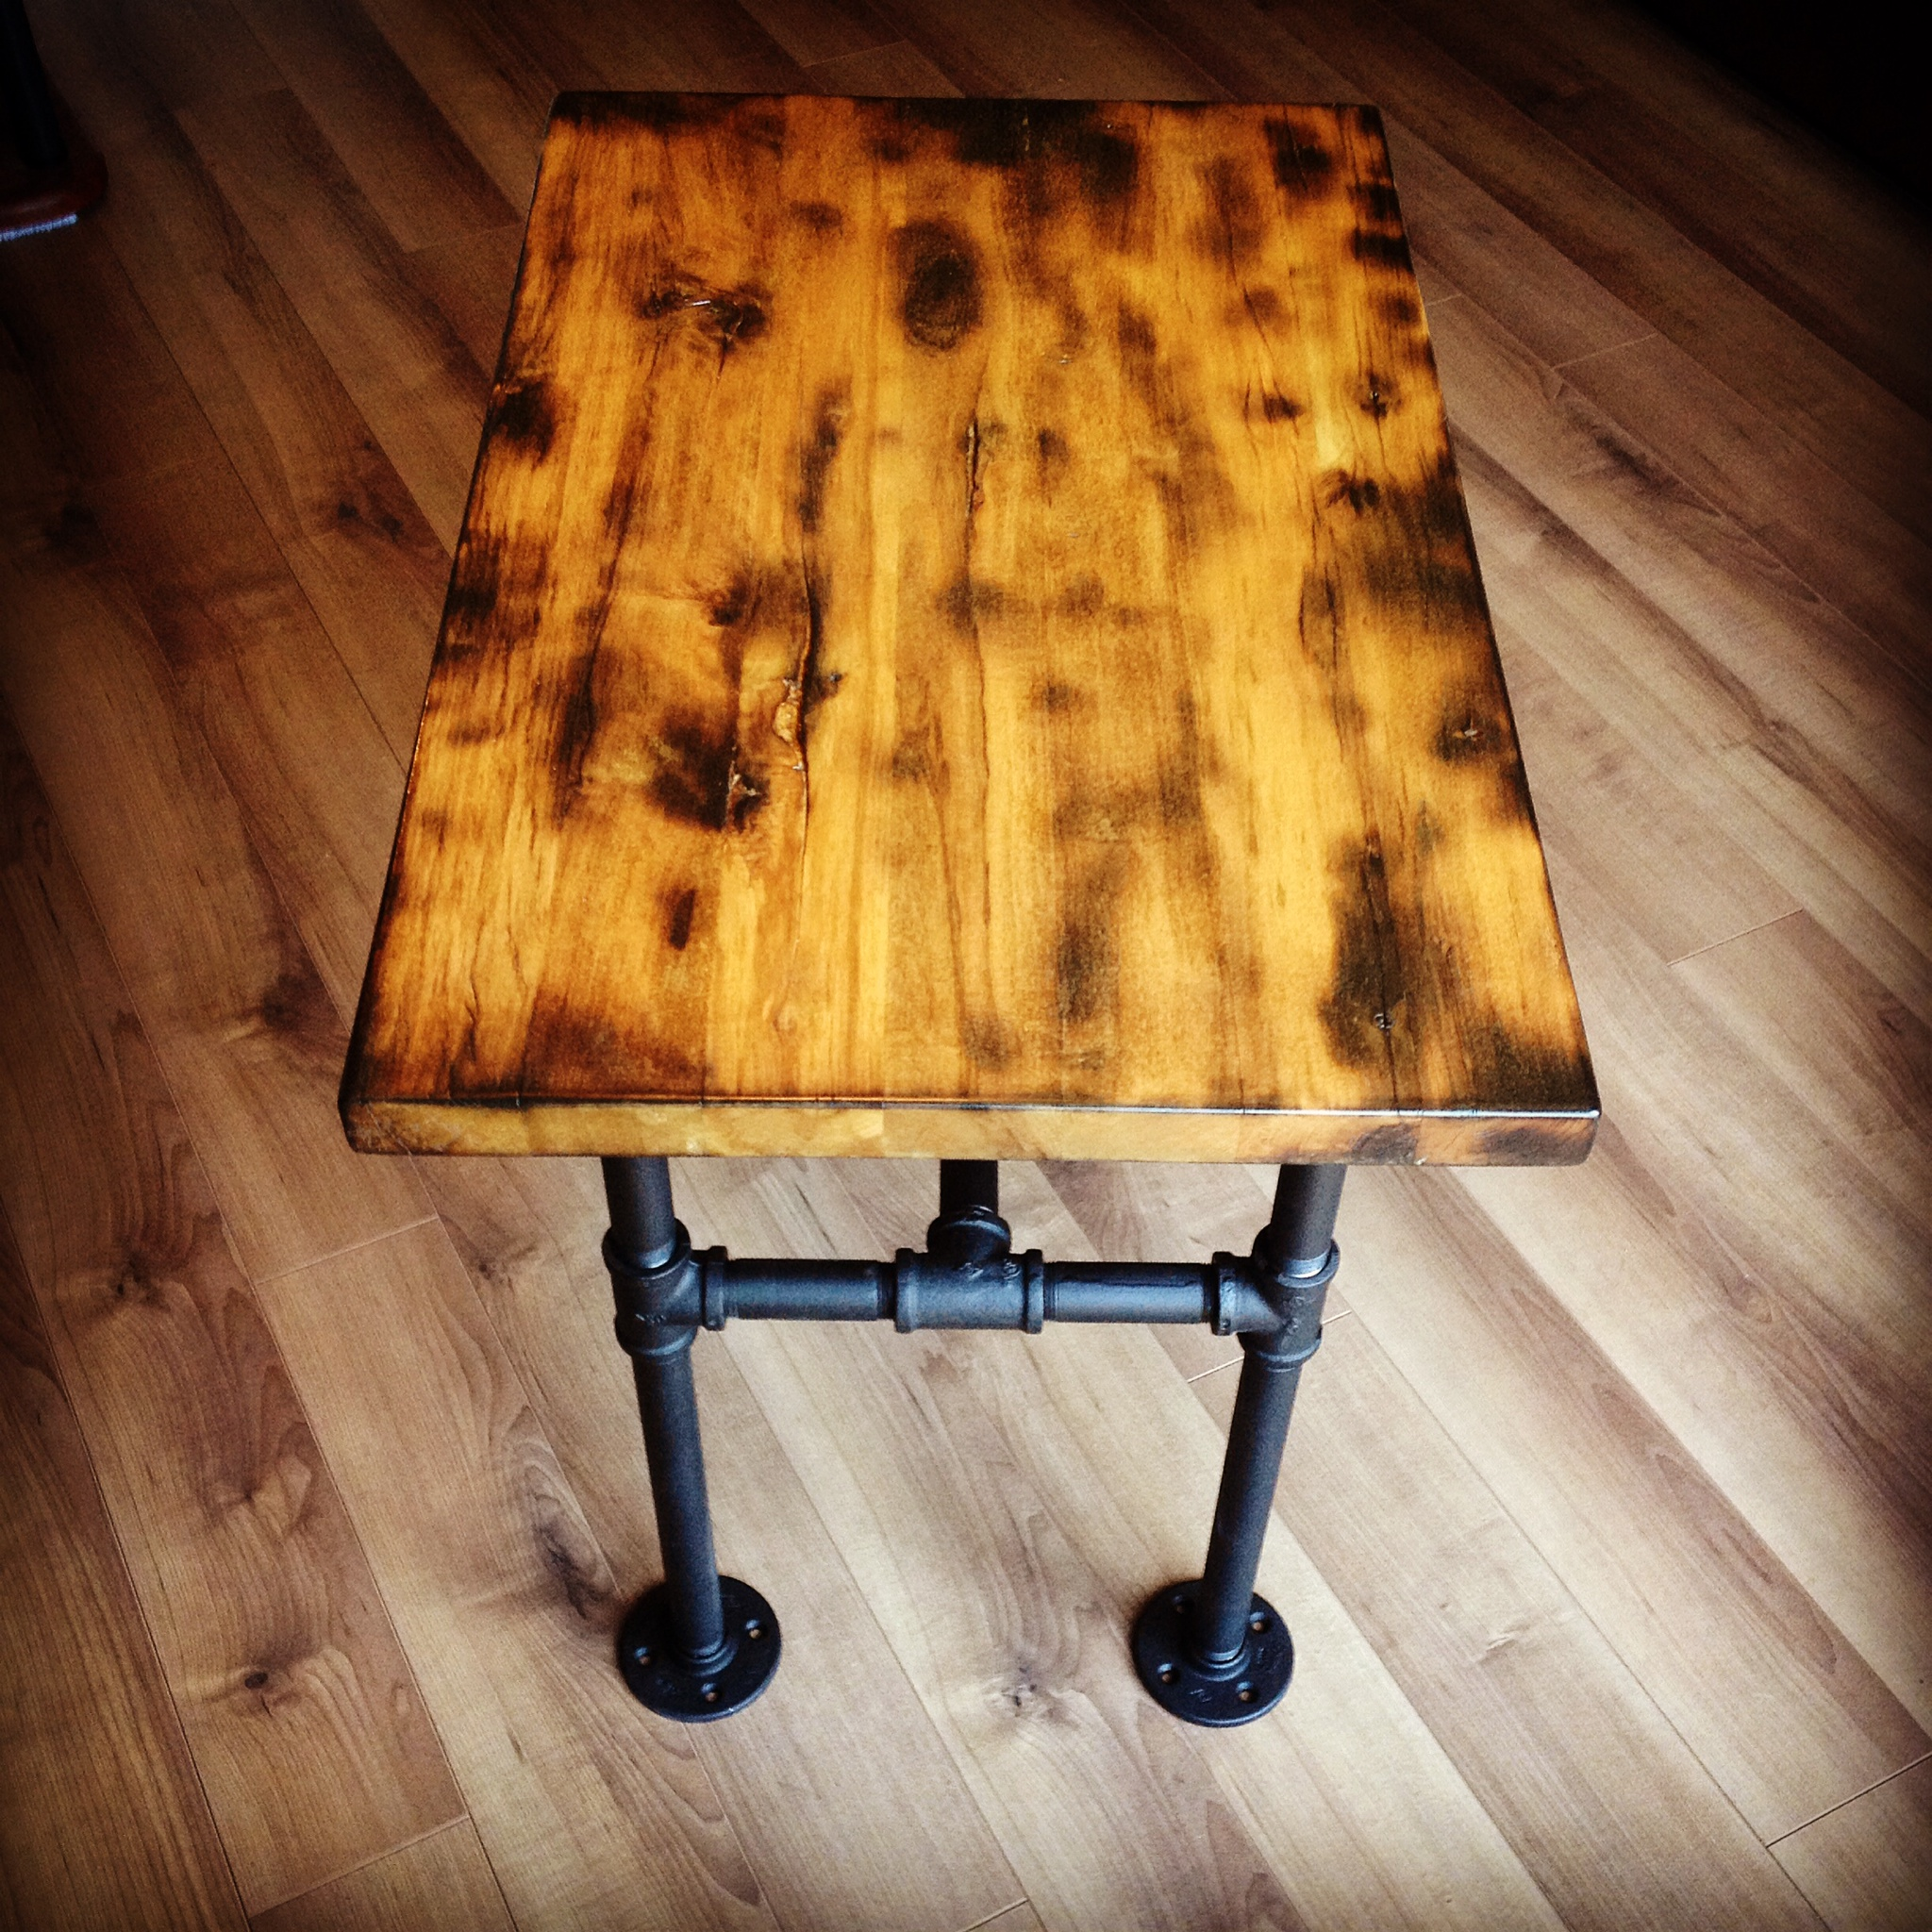 Rustic Burned Wood Pipe Leg Table